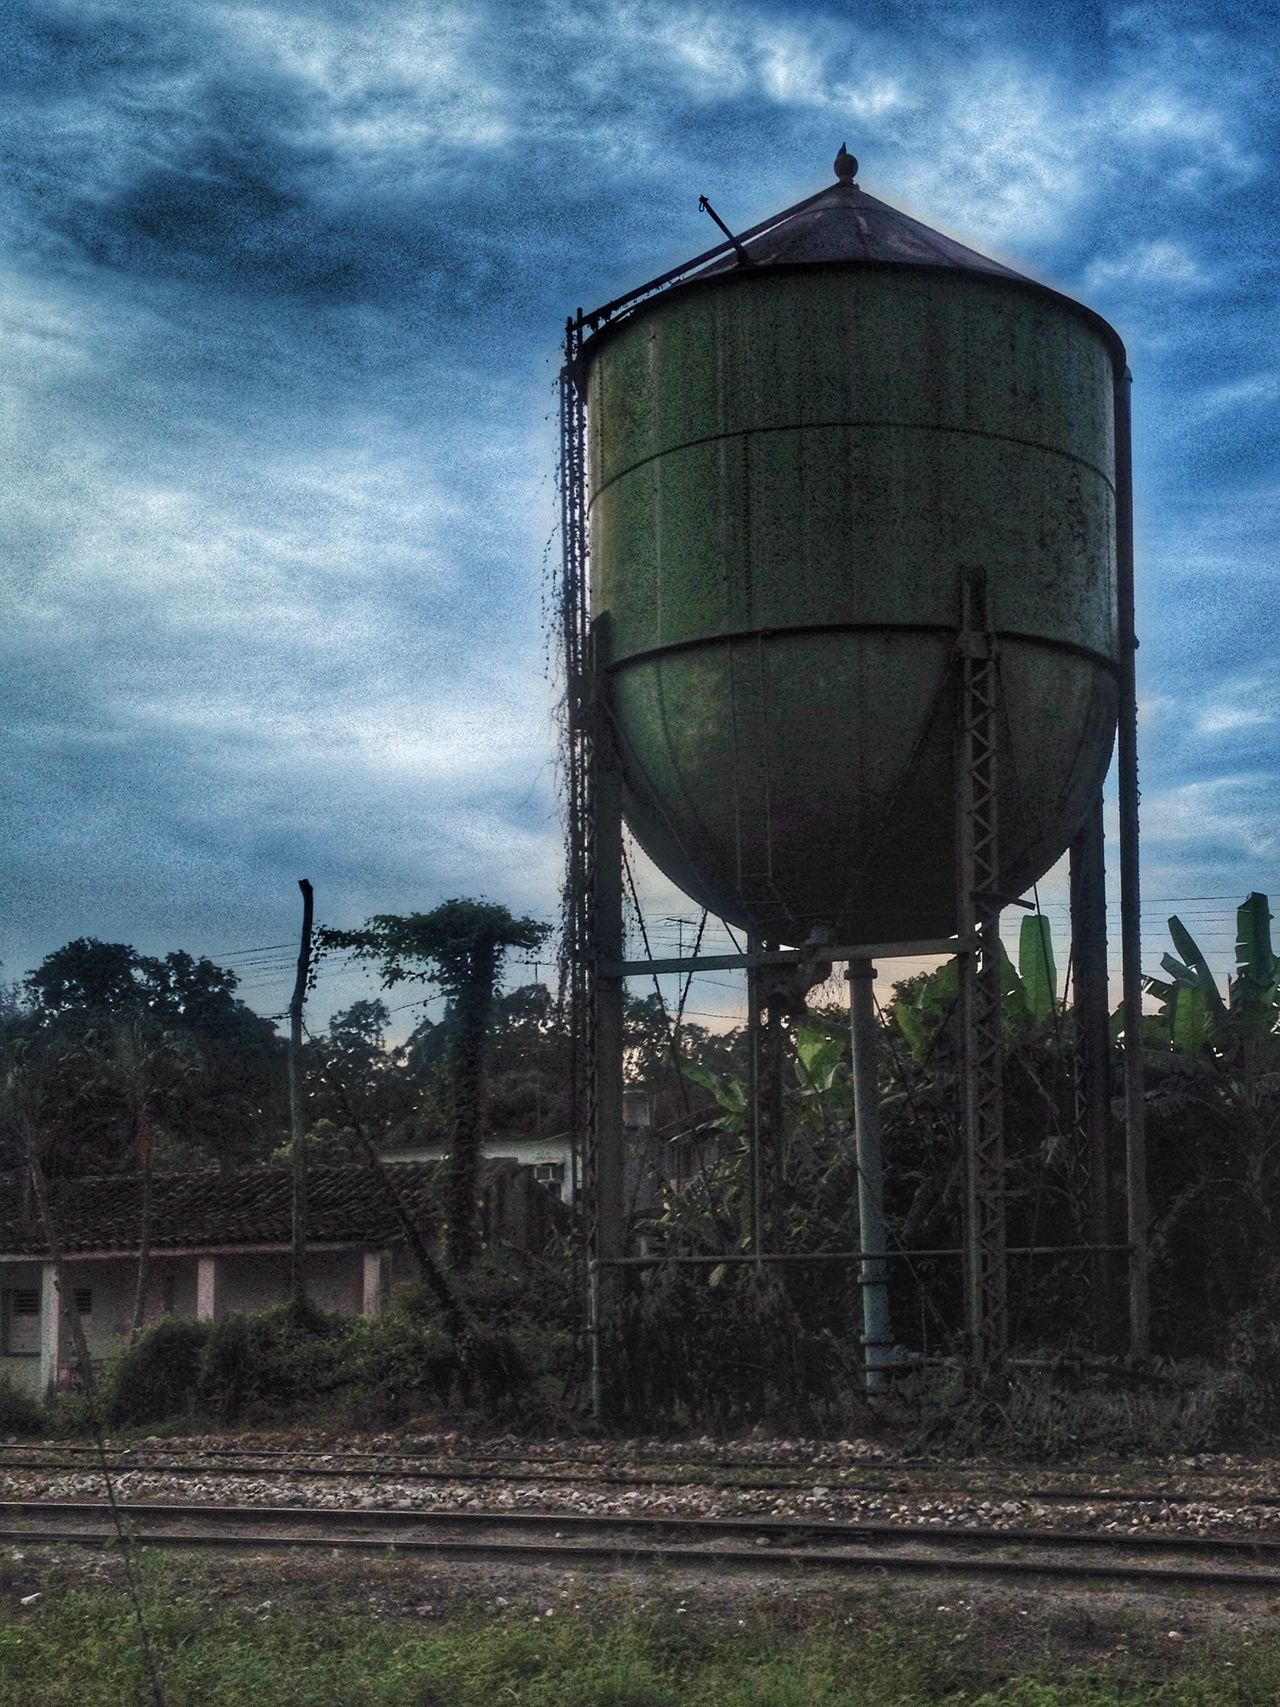 Old water tank Watertank Mobile Photography IPhoneography